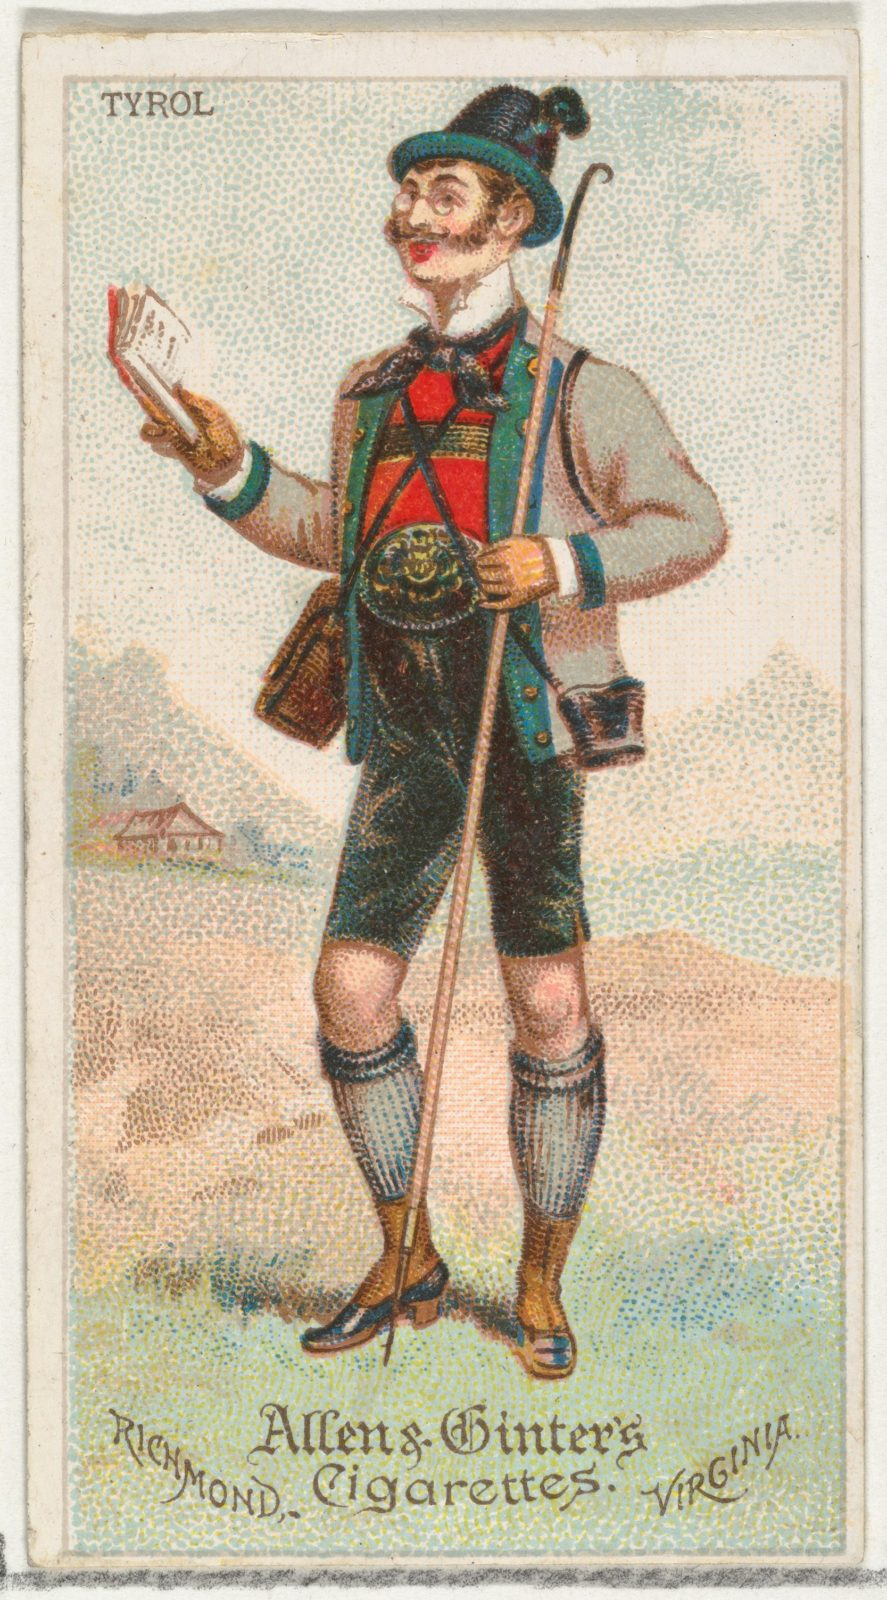 Tyrol, from World's Dudes series (N31) for Allen & Ginter Cigarettes